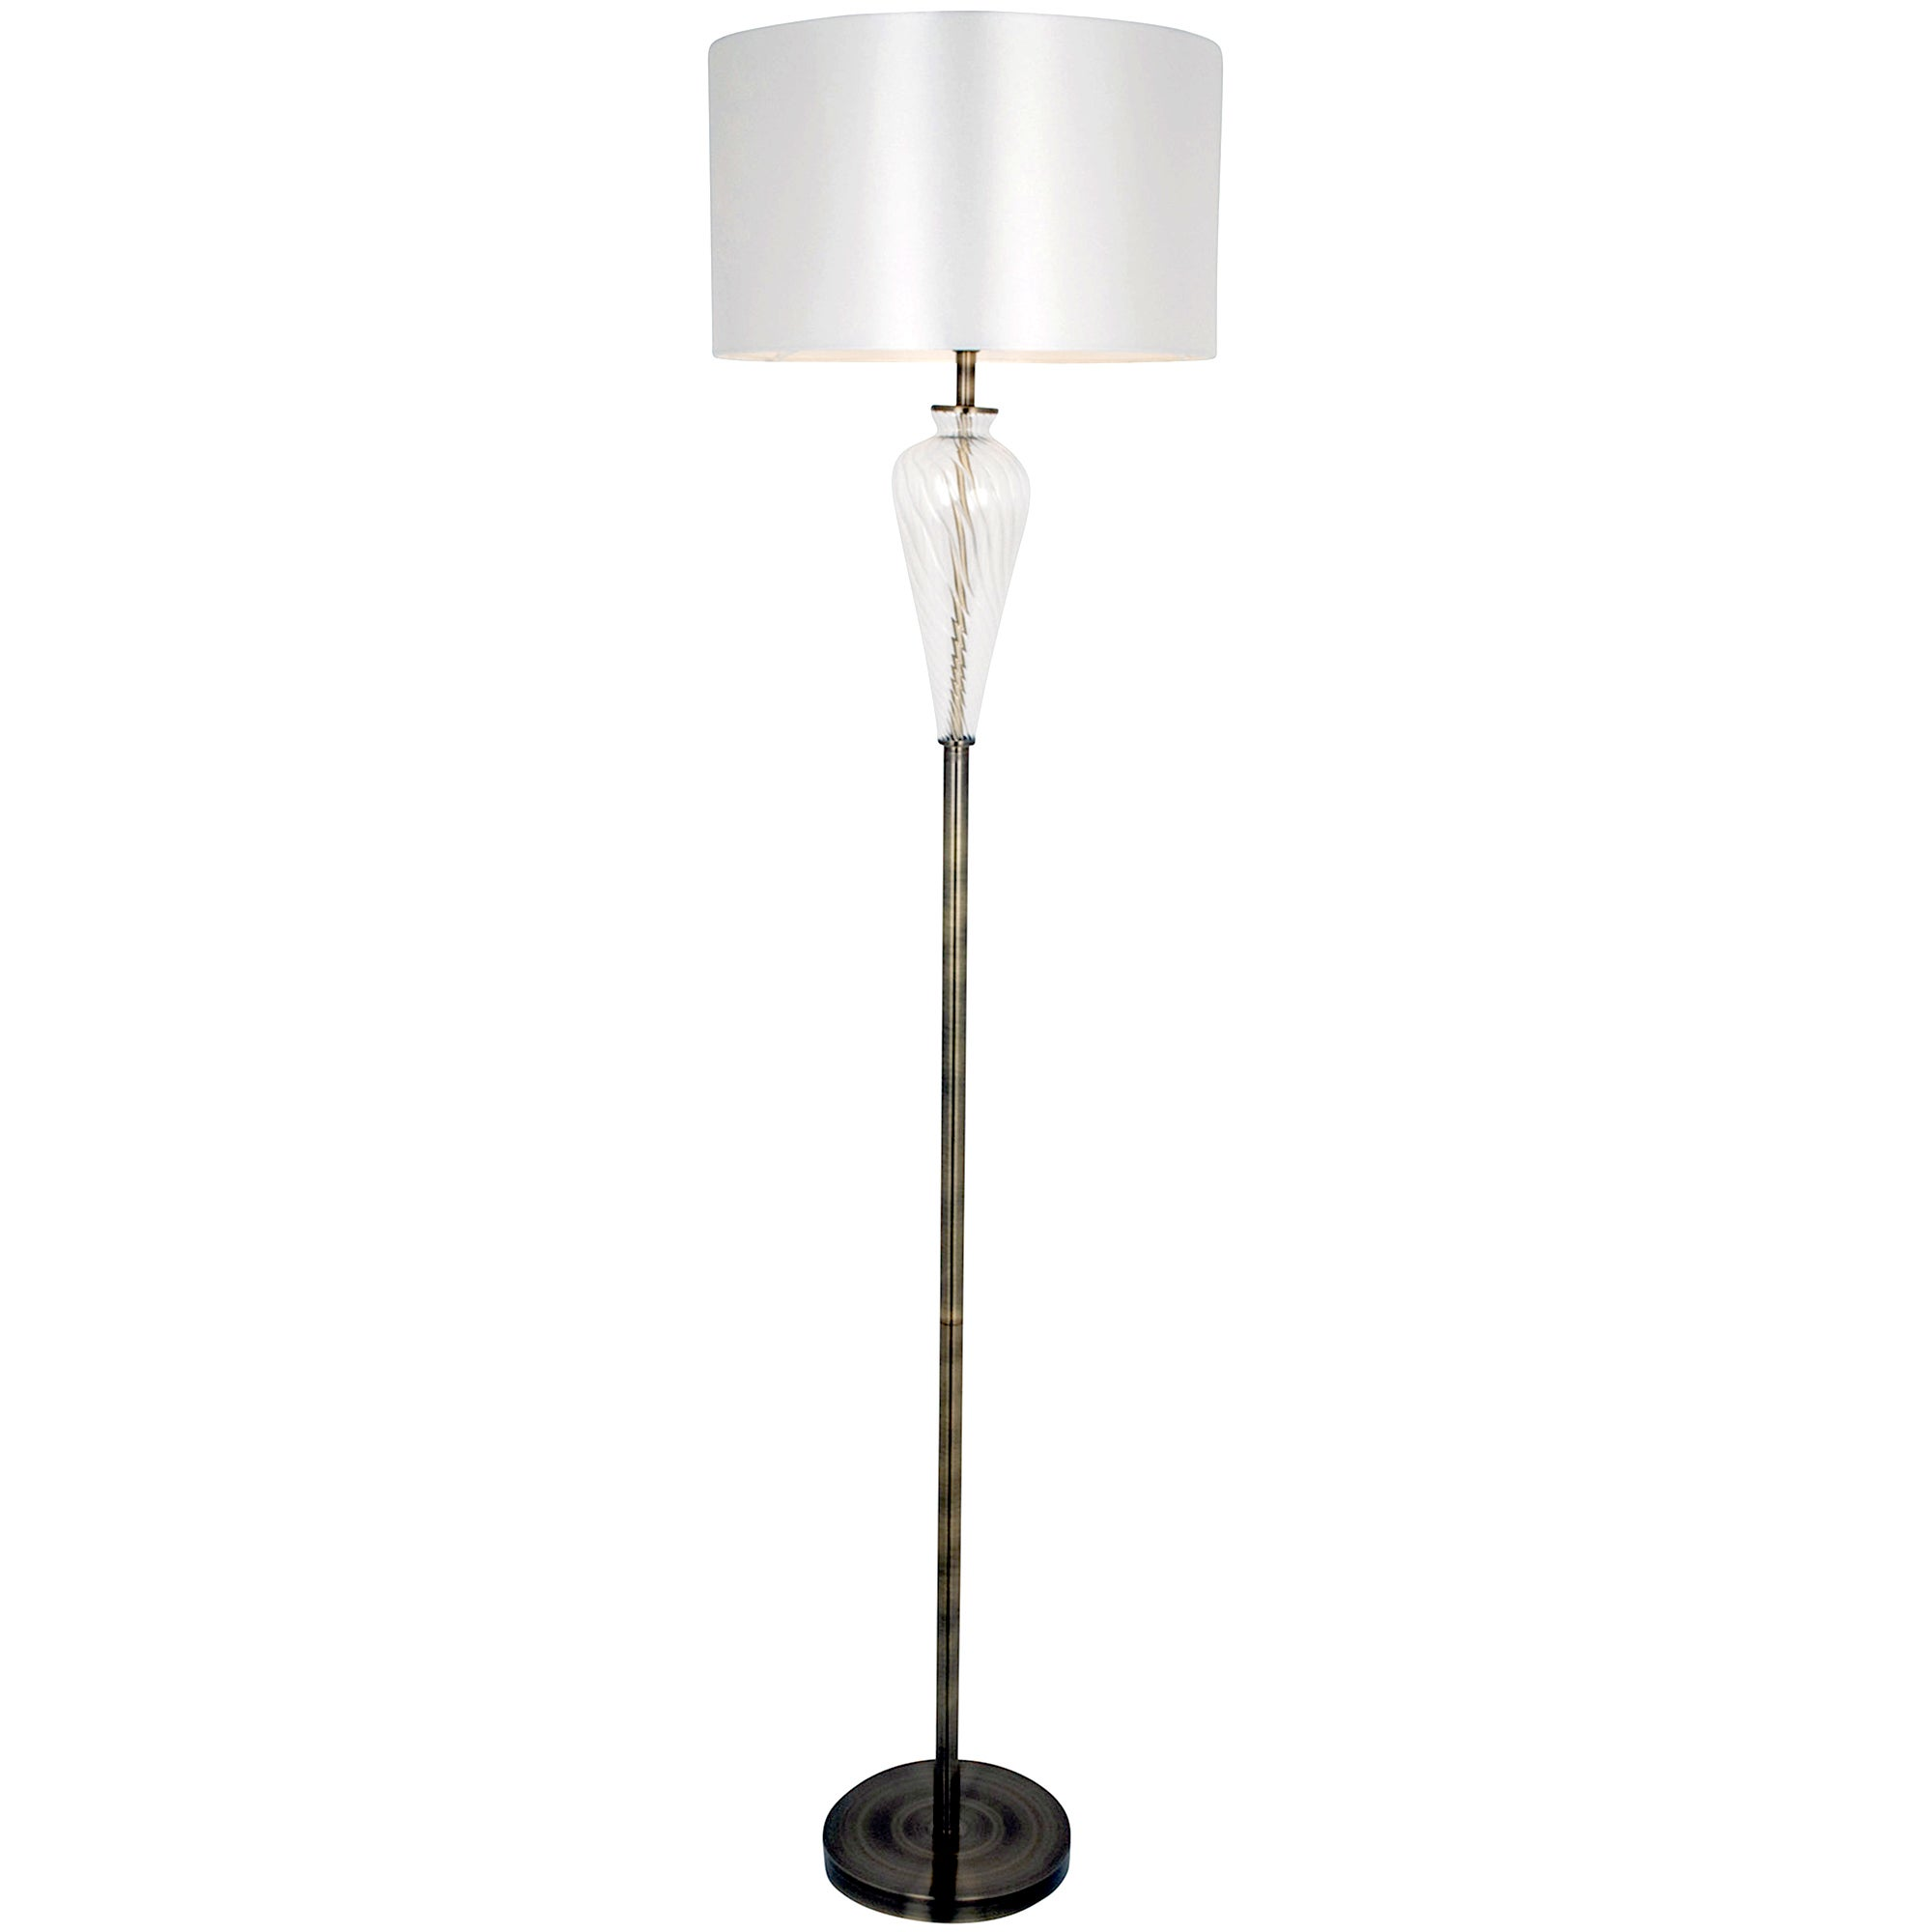 Hotel Antique Brass Glass Floor Lamp